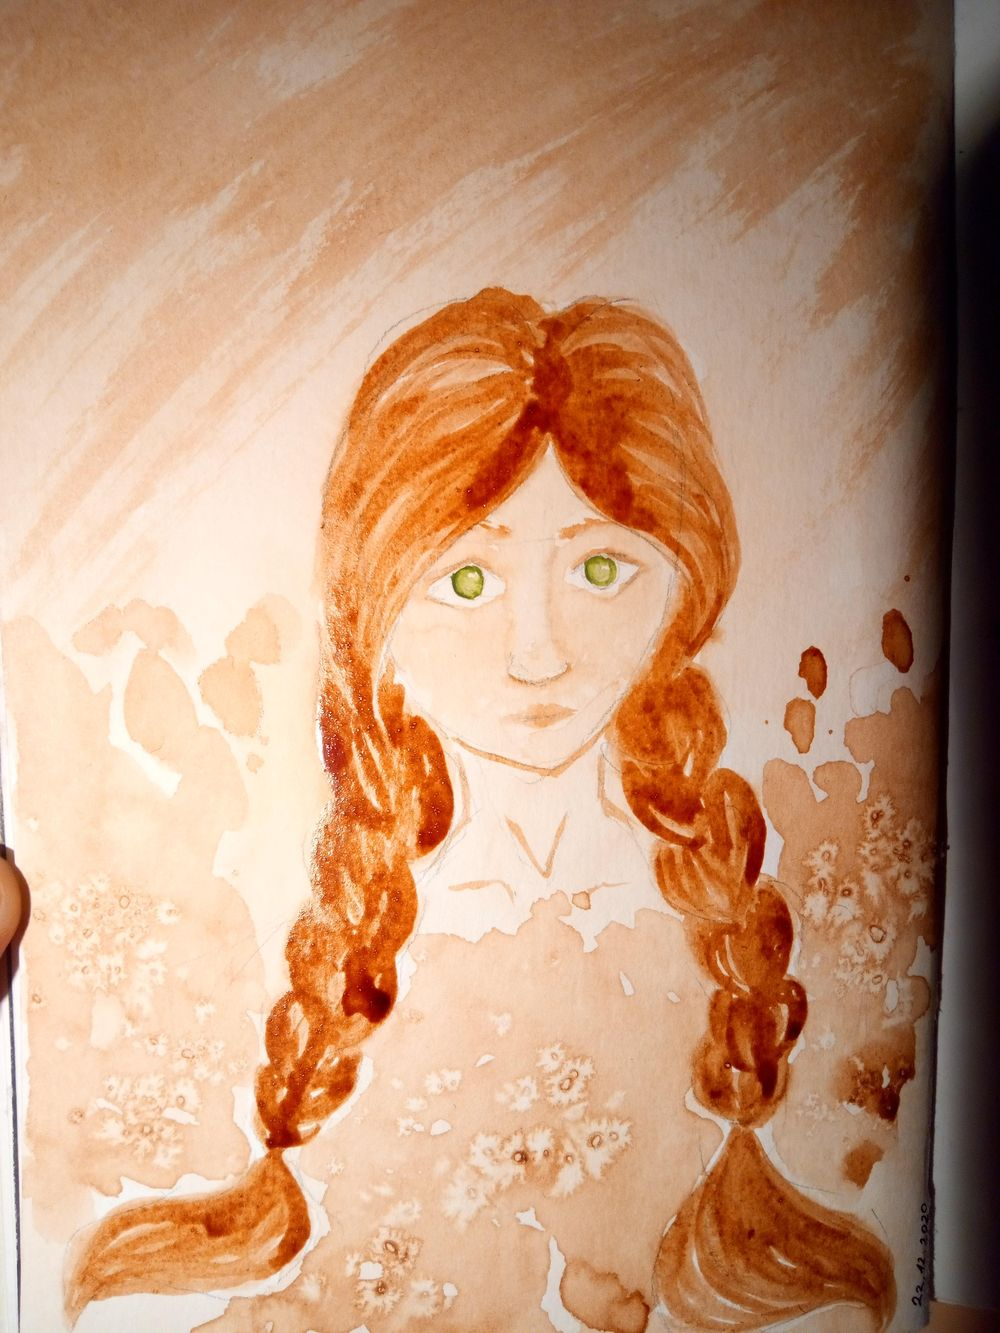 Coffeee Painting - image 2 - student project